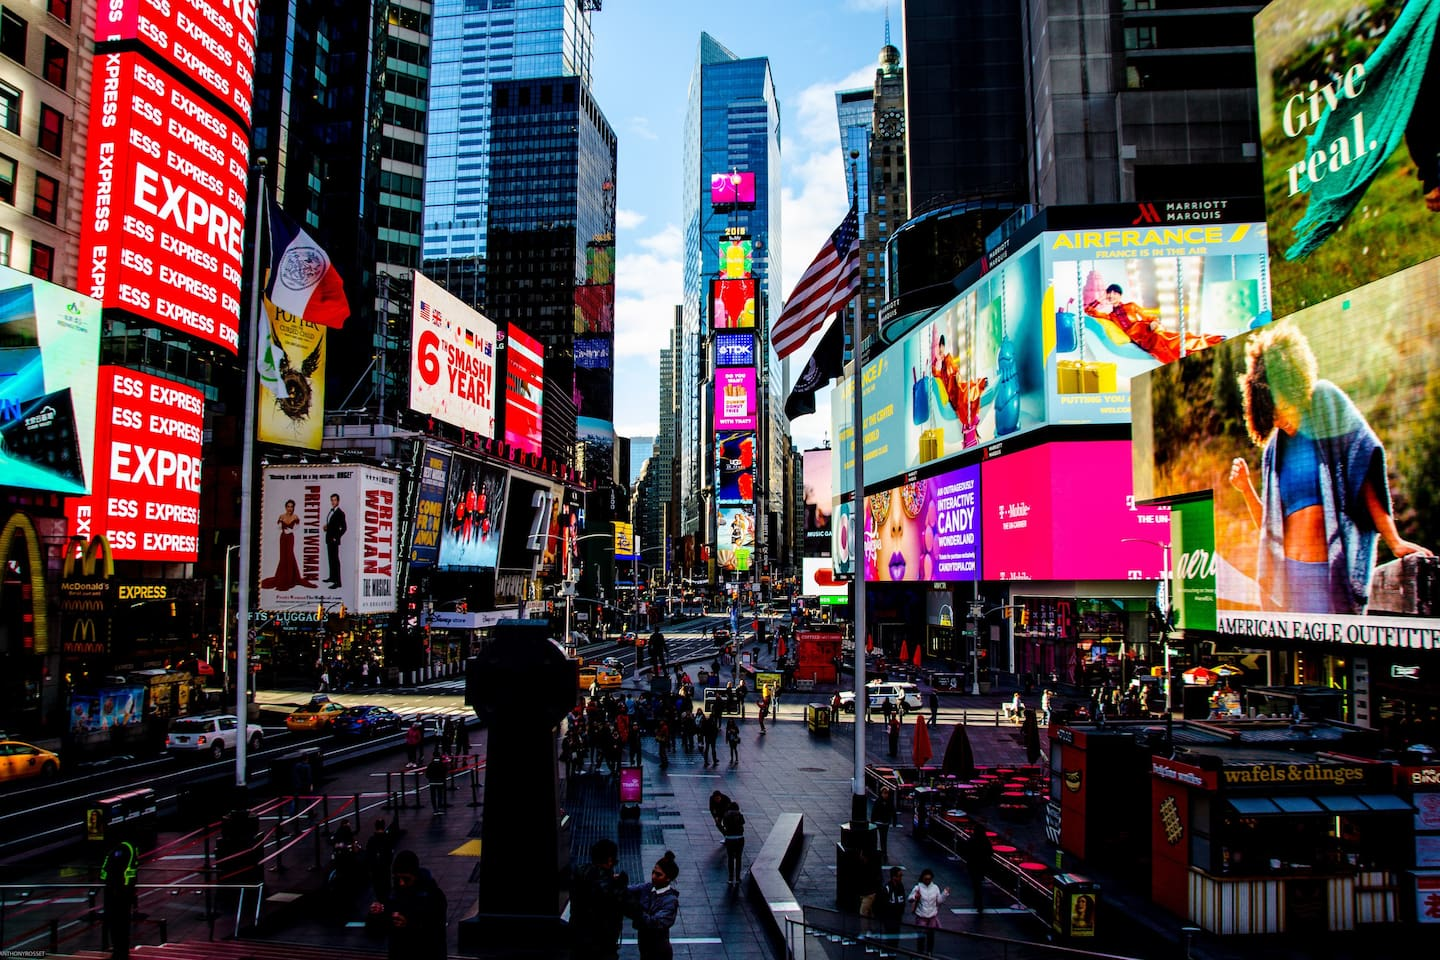 Steps away from Times Square and Broadway!